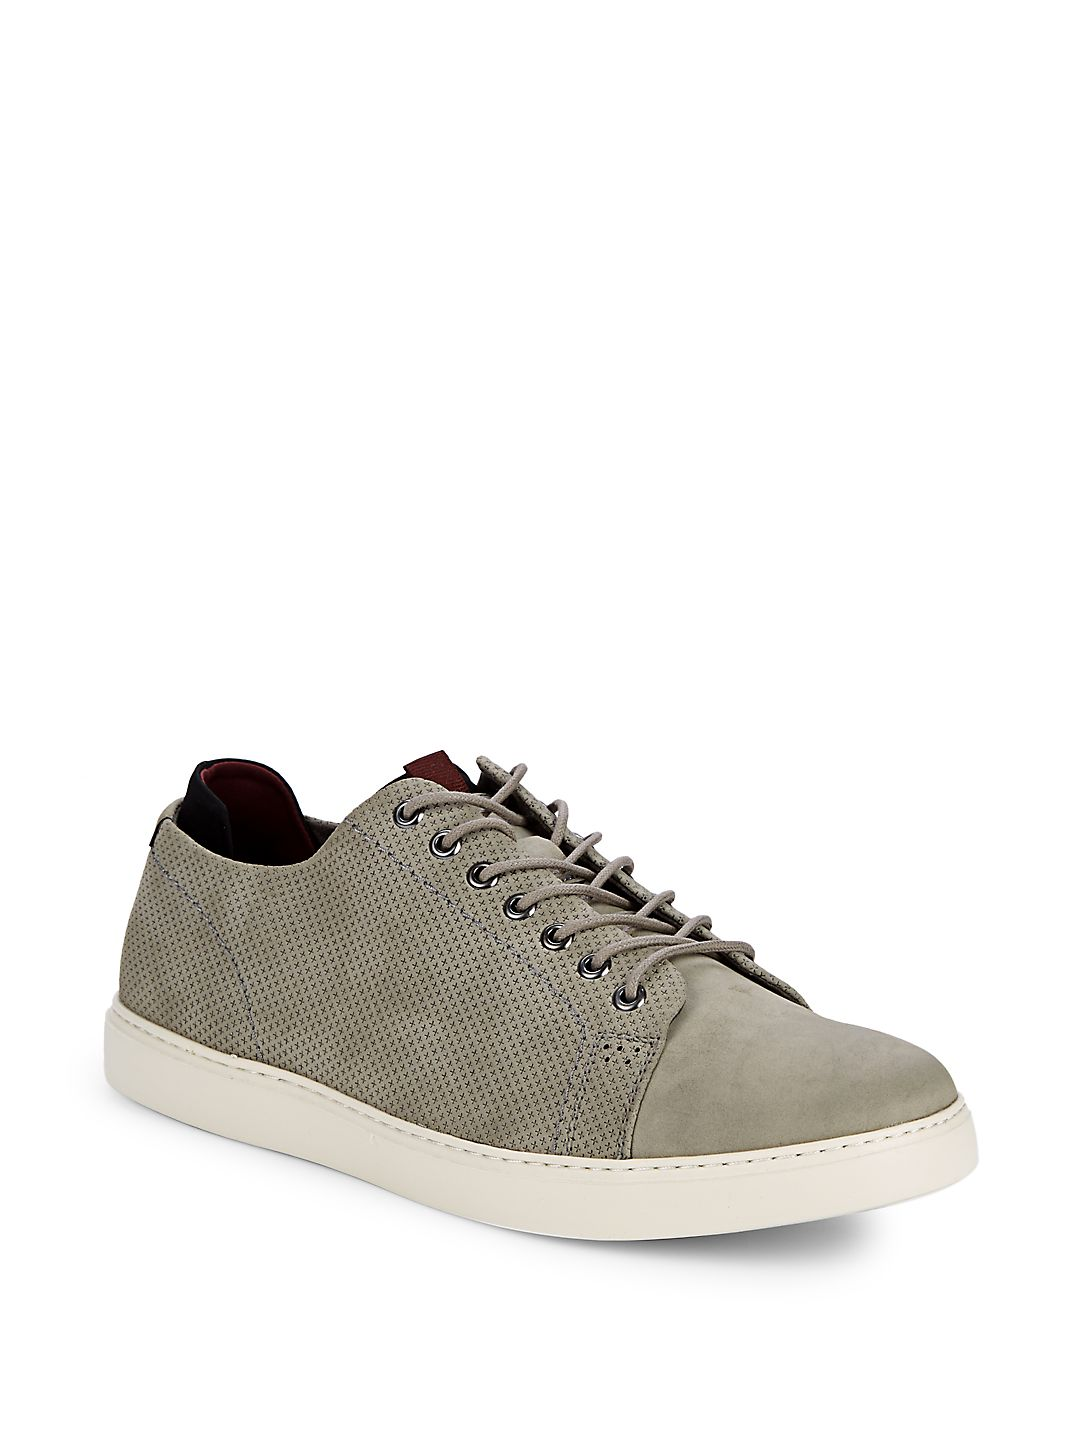 Indy Embossed Low-Top Sneakers